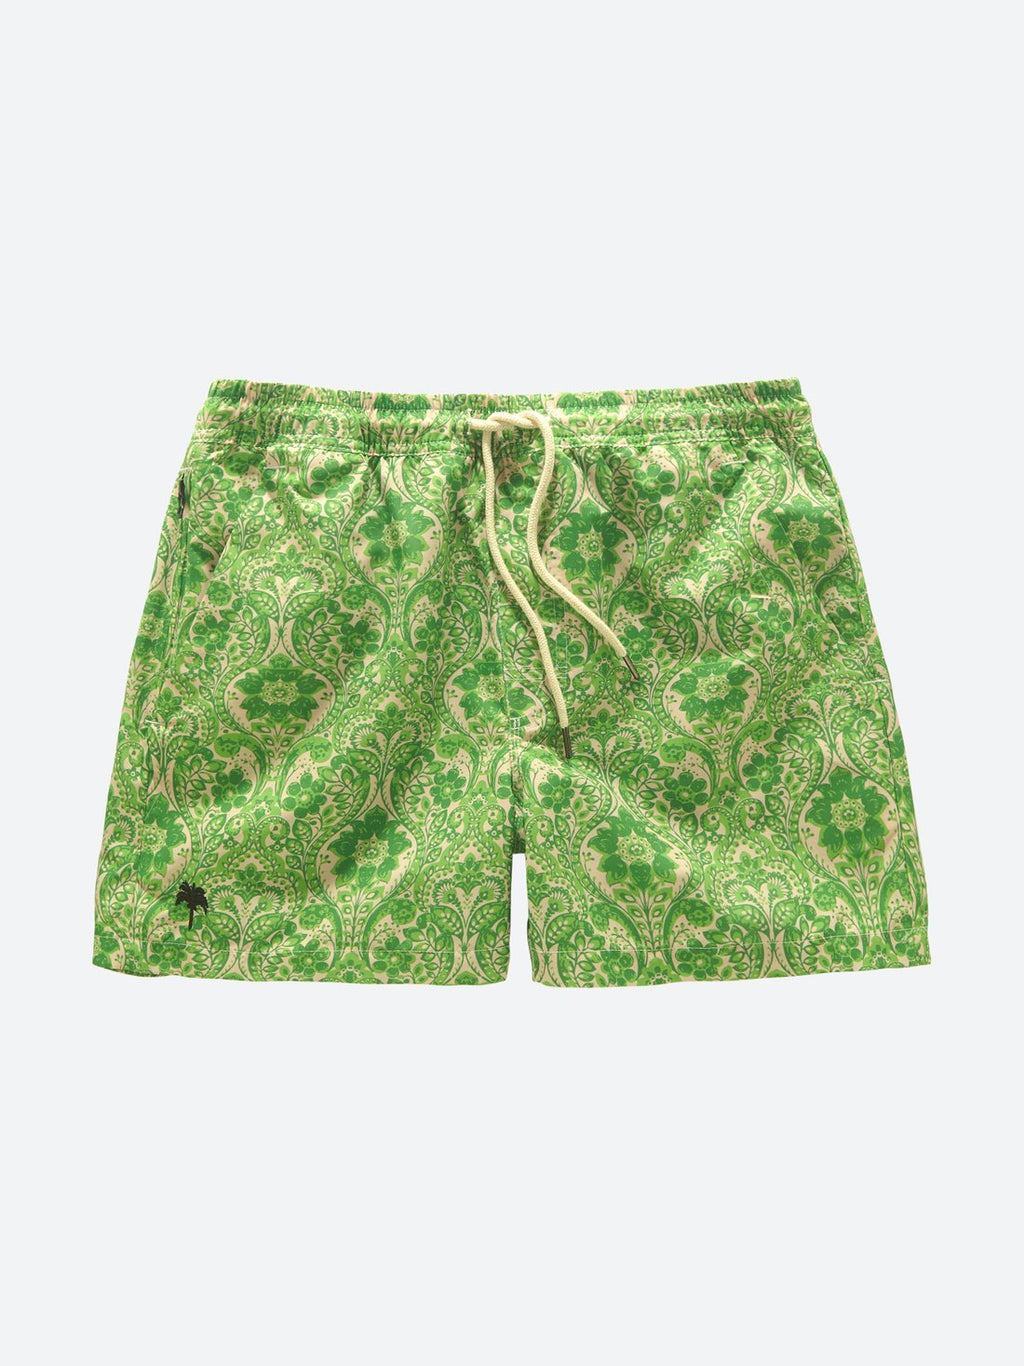 Greenie Swim Shorts